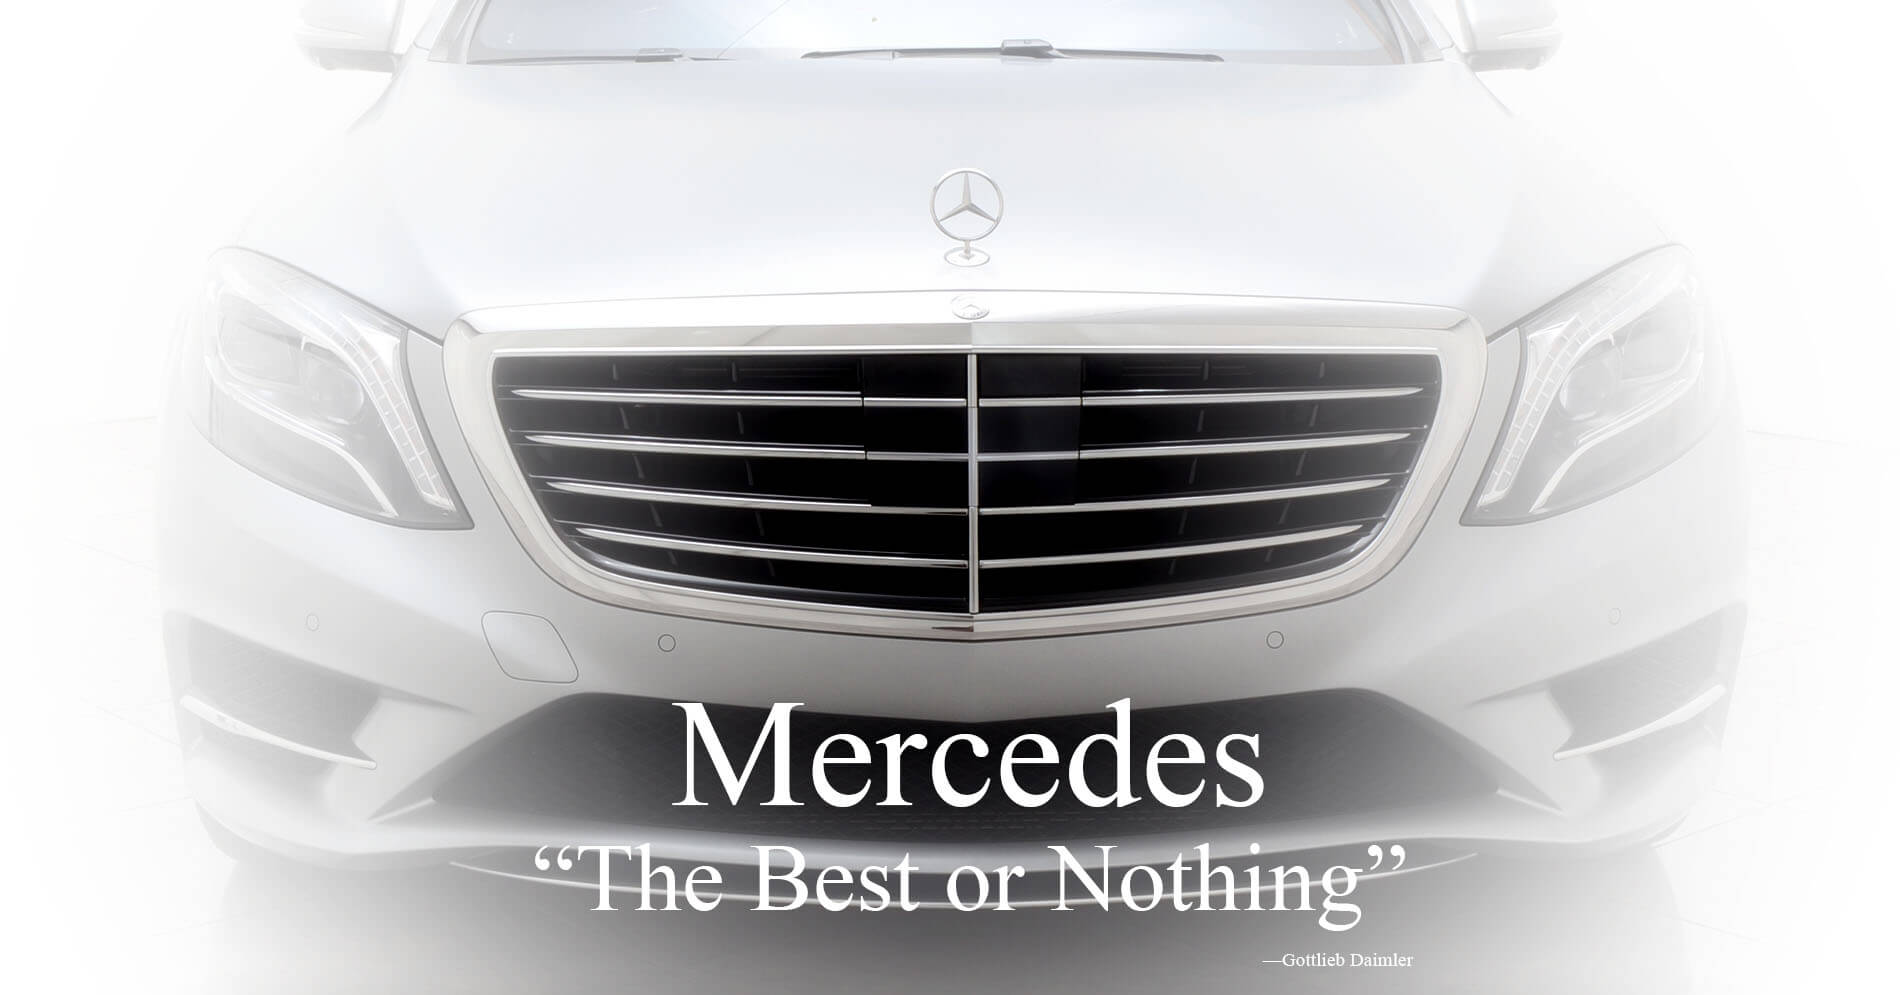 Mercedes Financing The Best or Nothing